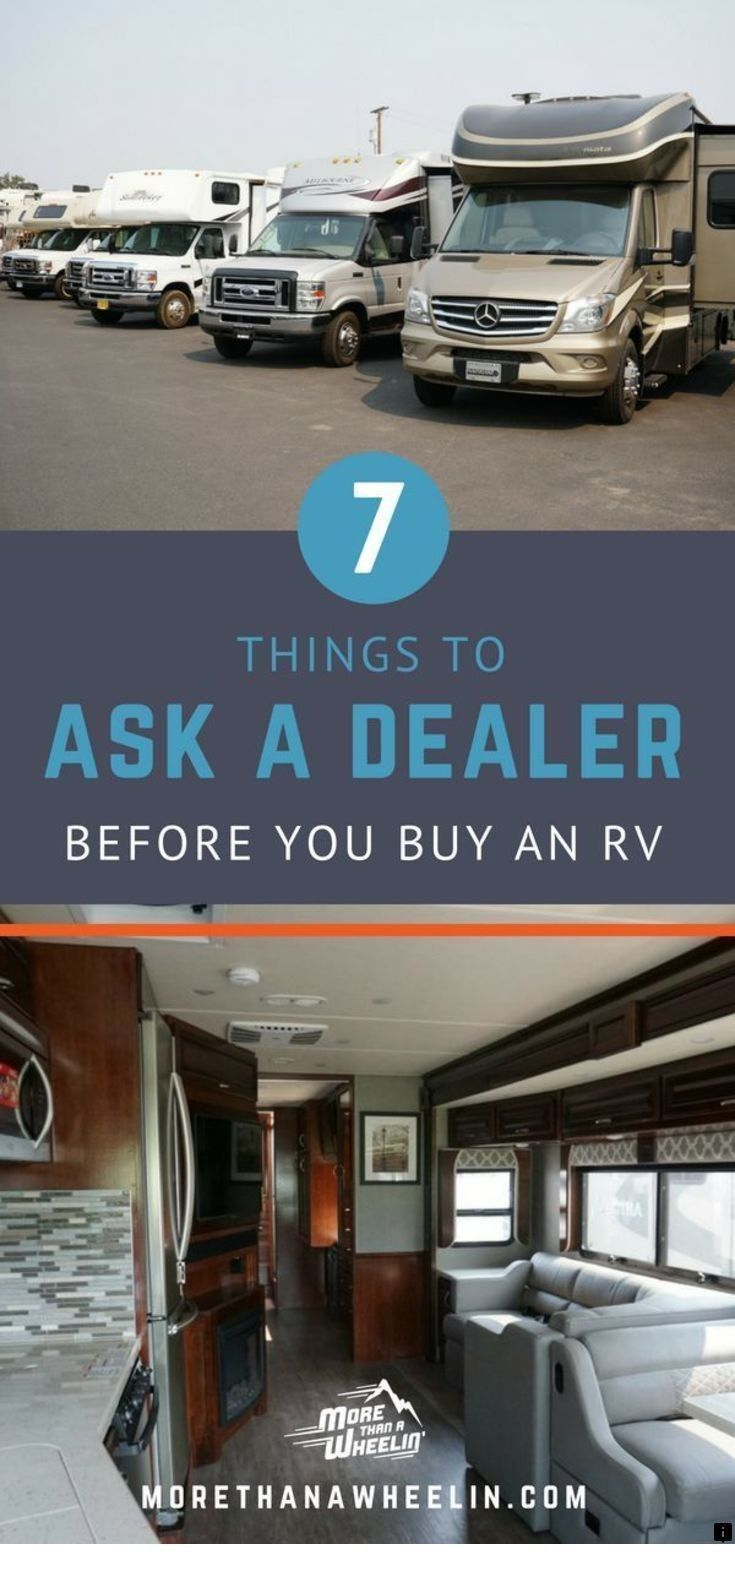 Check this website resource. Find out about rv dealers